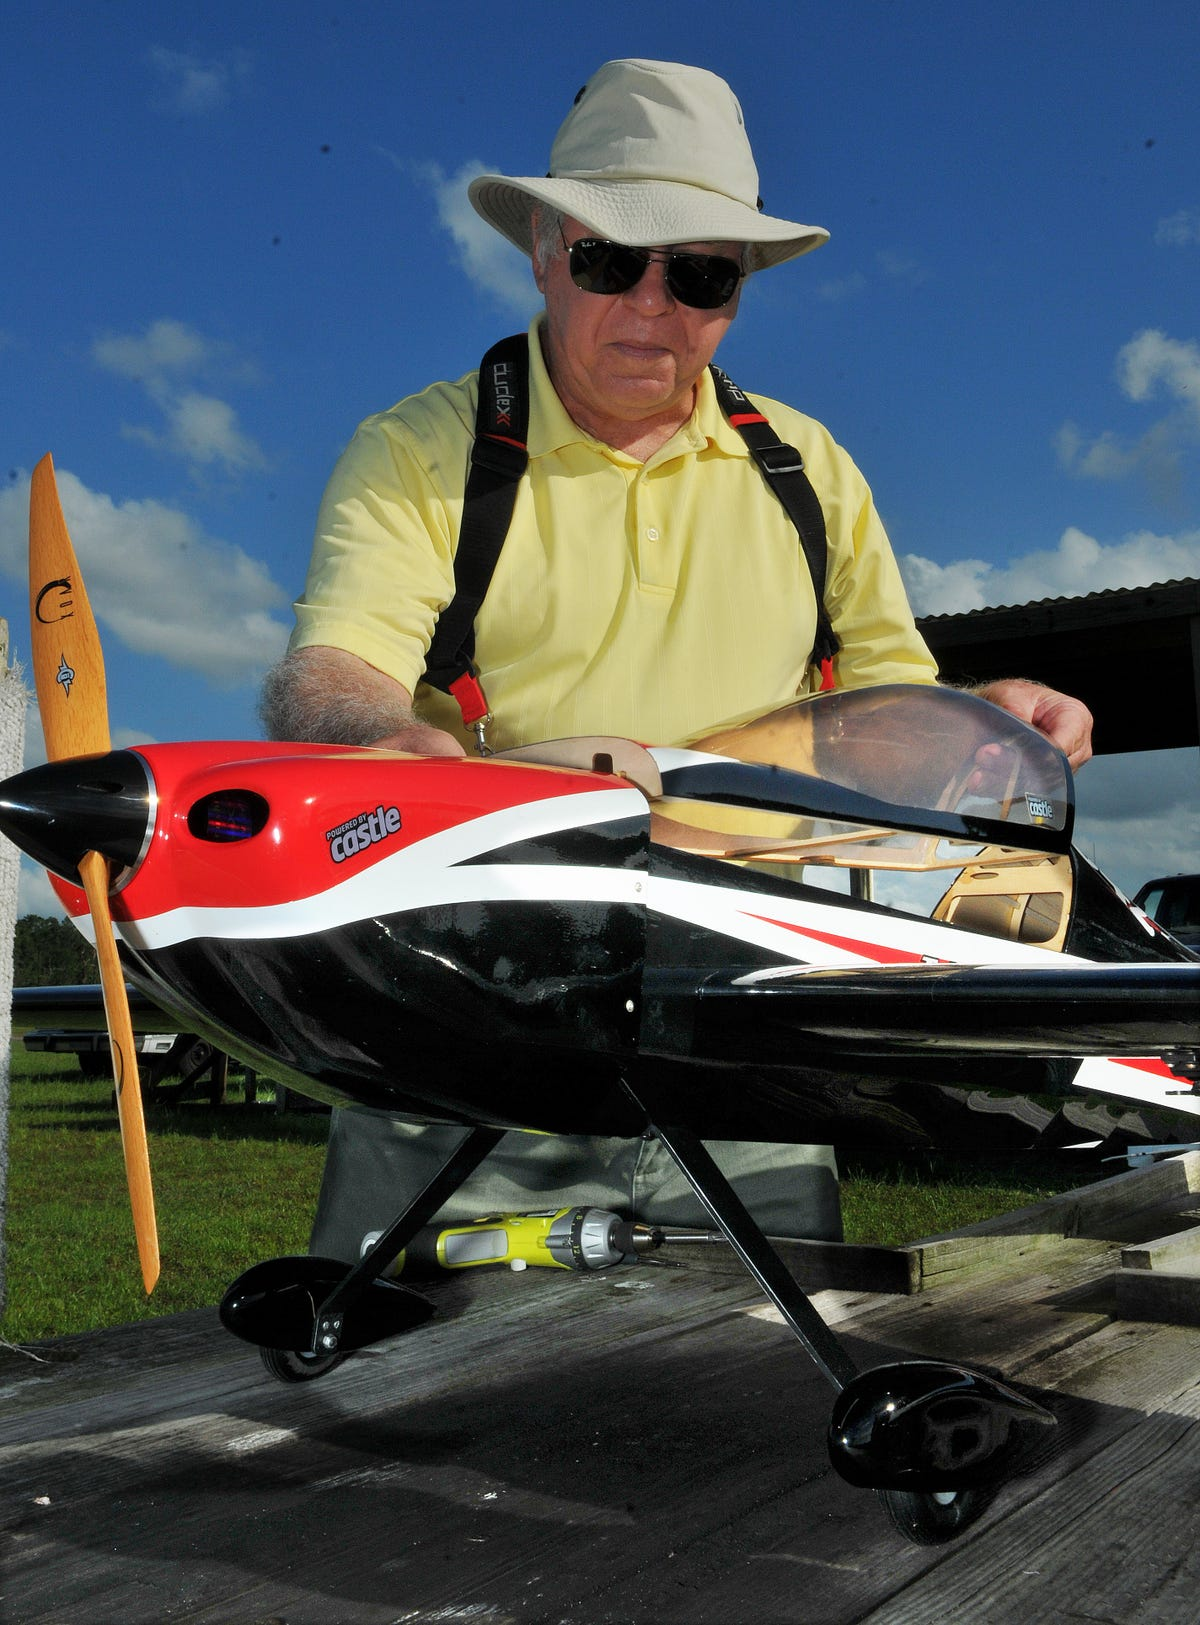 High-flying hobby has its ups and downs